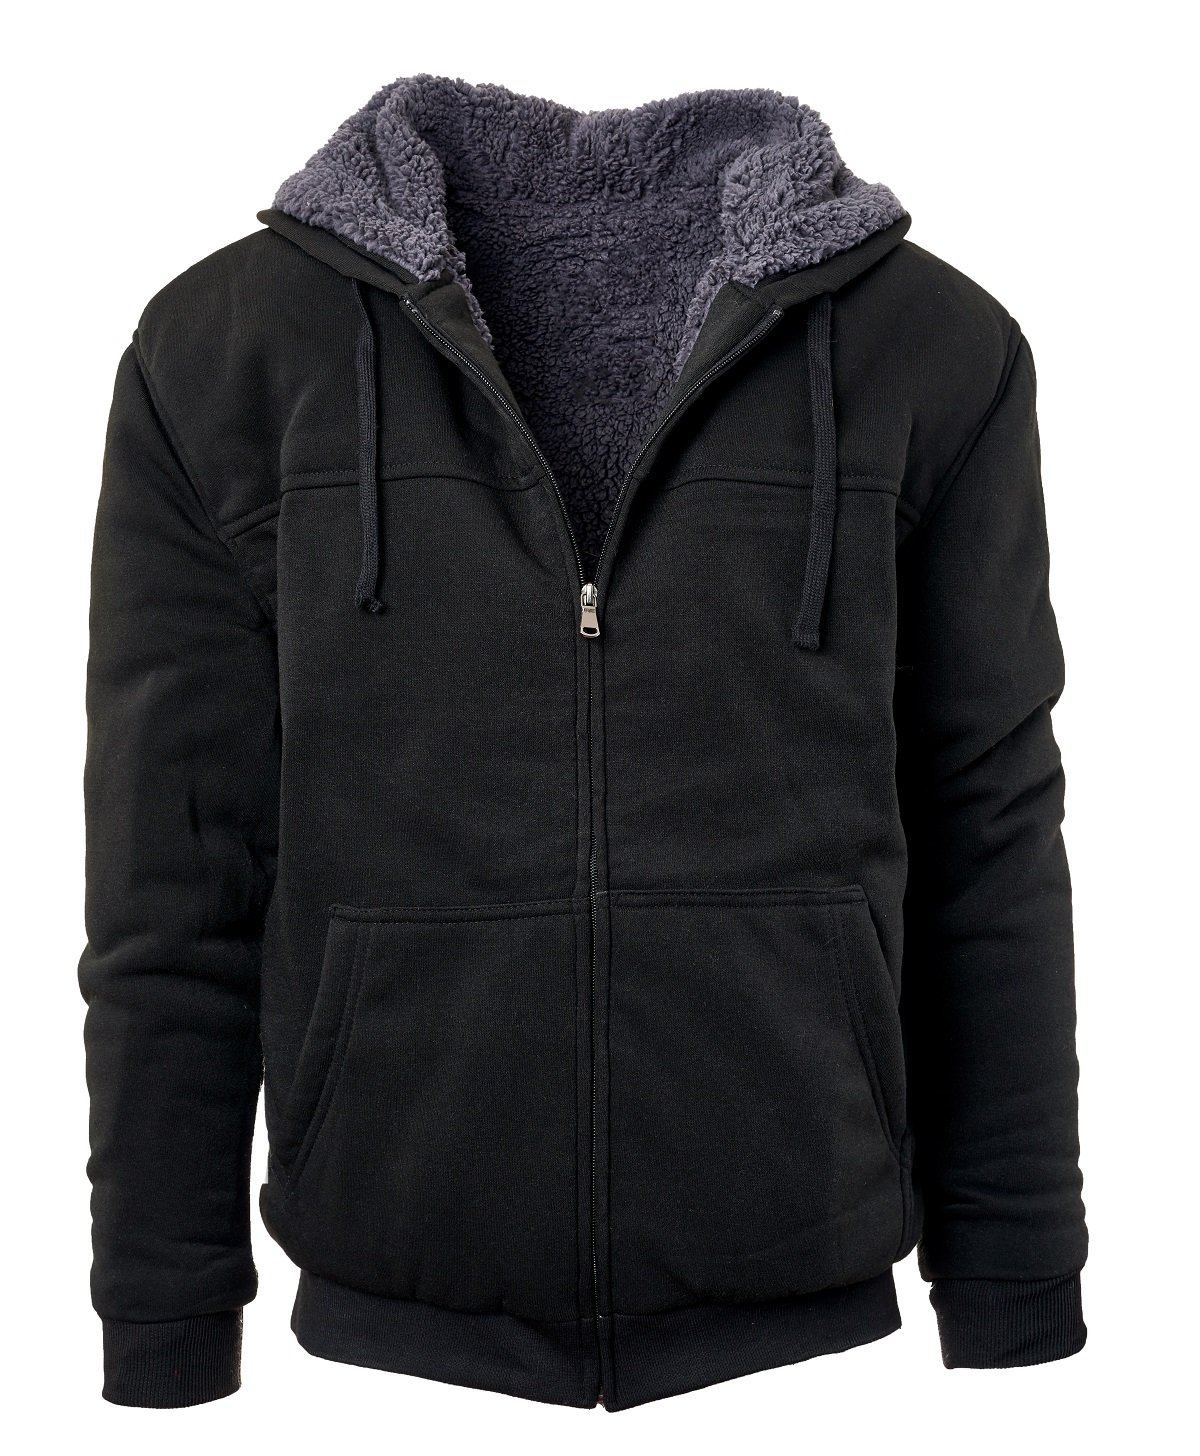 Glamsia Fresh Groove Heavyweight Sherpa Lined Full Zip Men's Fleece Hoodie (Black-Char,L) by Glamsia